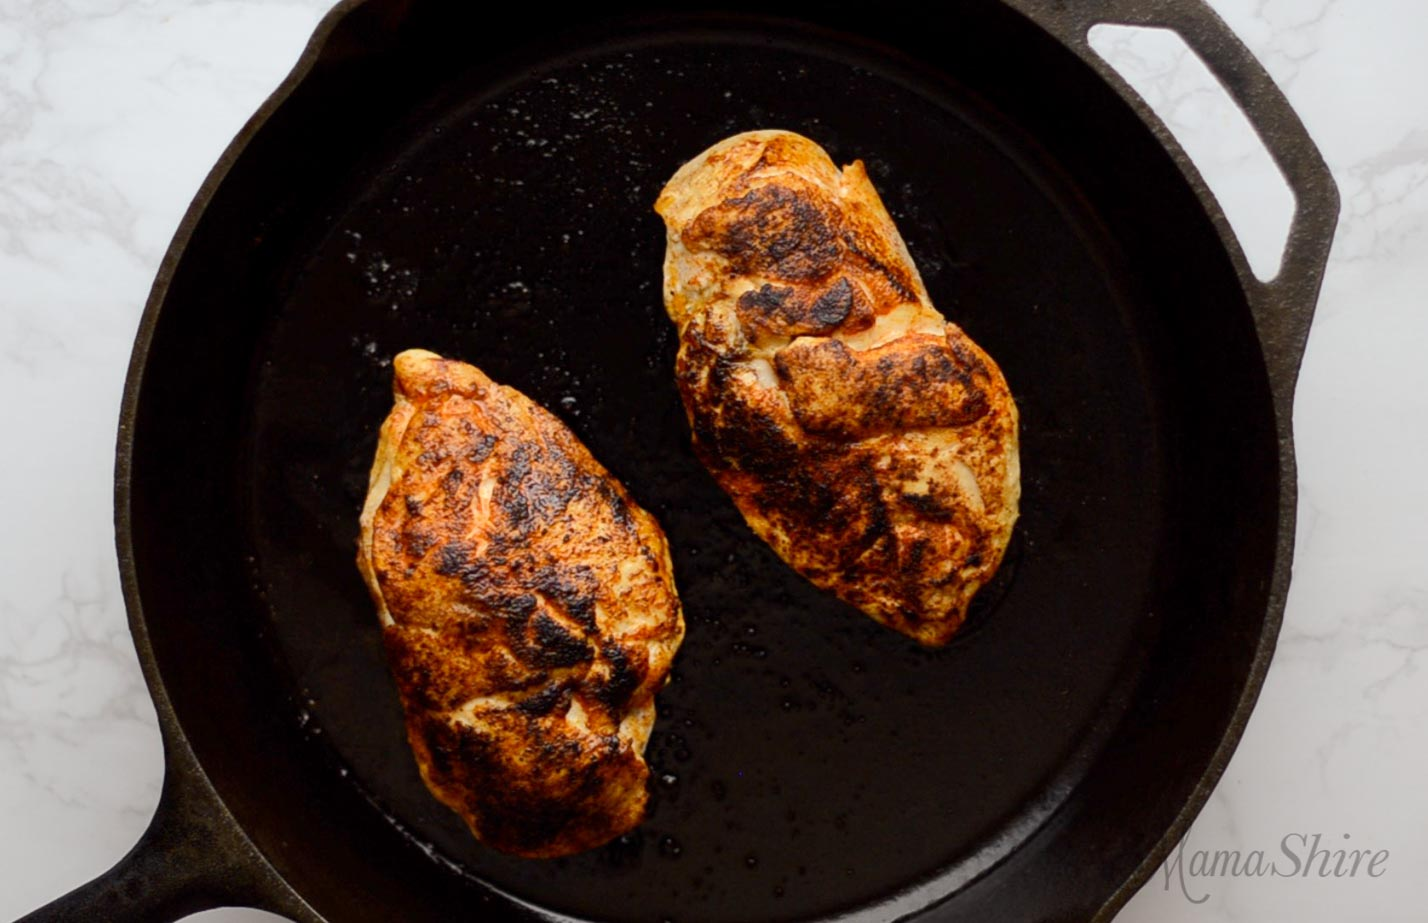 Two chicken breasts that have been seasoned in a black iron skillet.